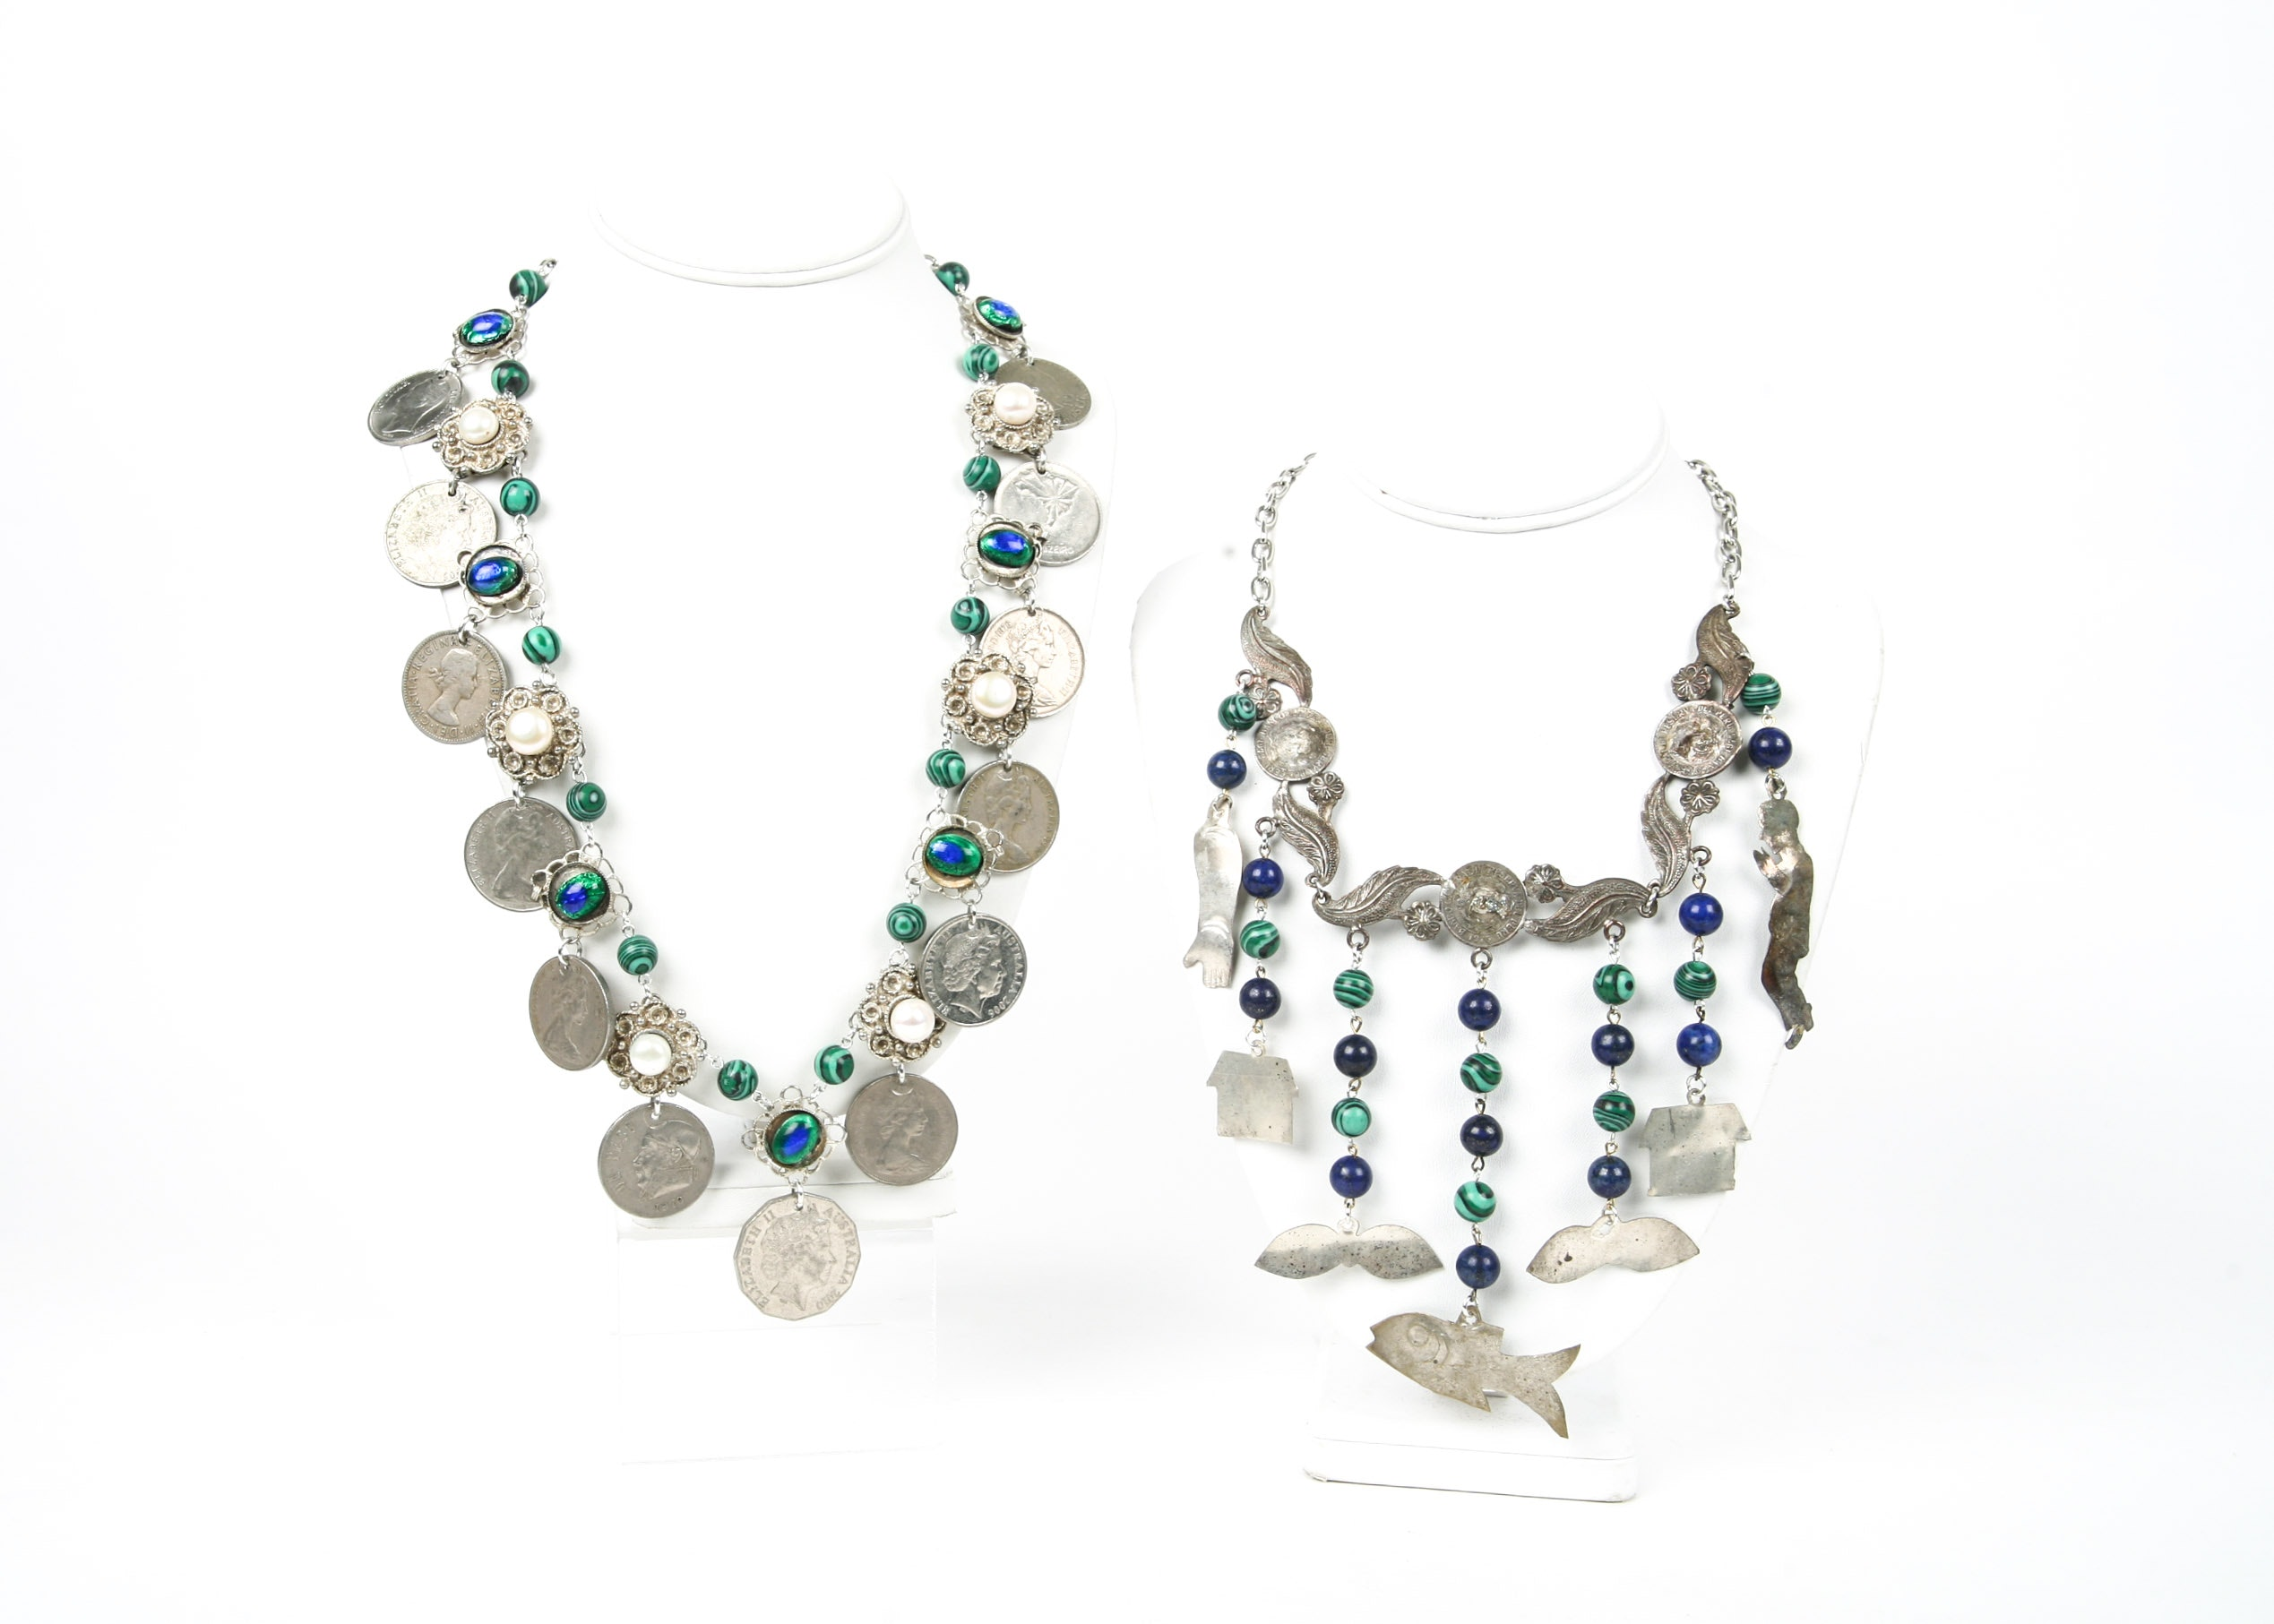 Milagro, Coin, Lapis Lazuli, and Pearl Necklaces